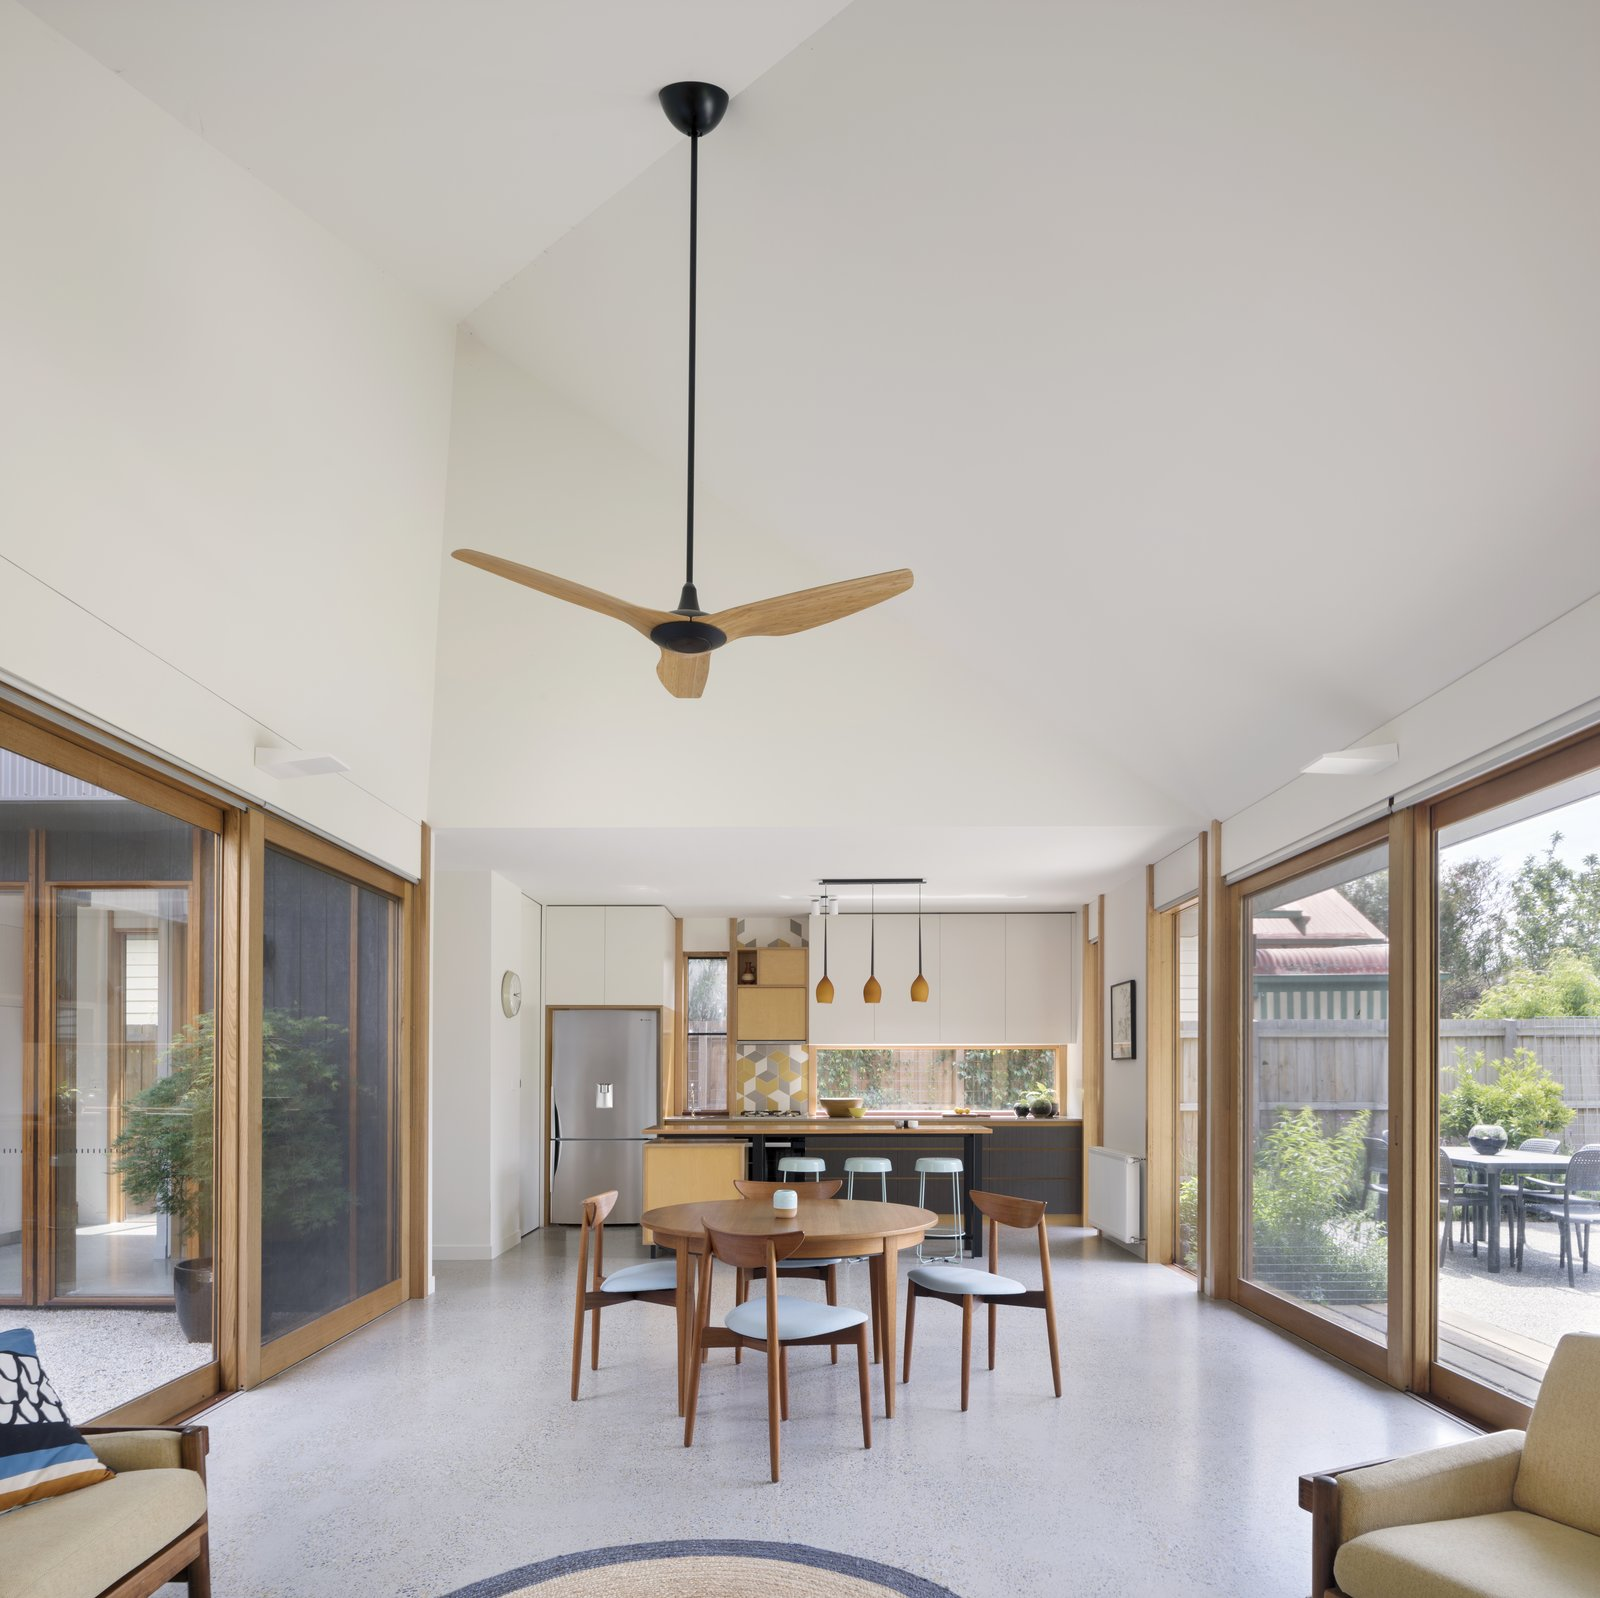 Dining Room, Chair, Table, Bar, Pendant Lighting, and Wall Lighting Blackbutt window treatments and a polished concrete floor unify the kitchen, dining, and living areas on one end of the courtyard. A Big-Ass Haiku ceiling fan can provide extra air.  Photo 5 of 10 in A Family Home in Australia Features a Playful Version of the Classic Pitched Roof